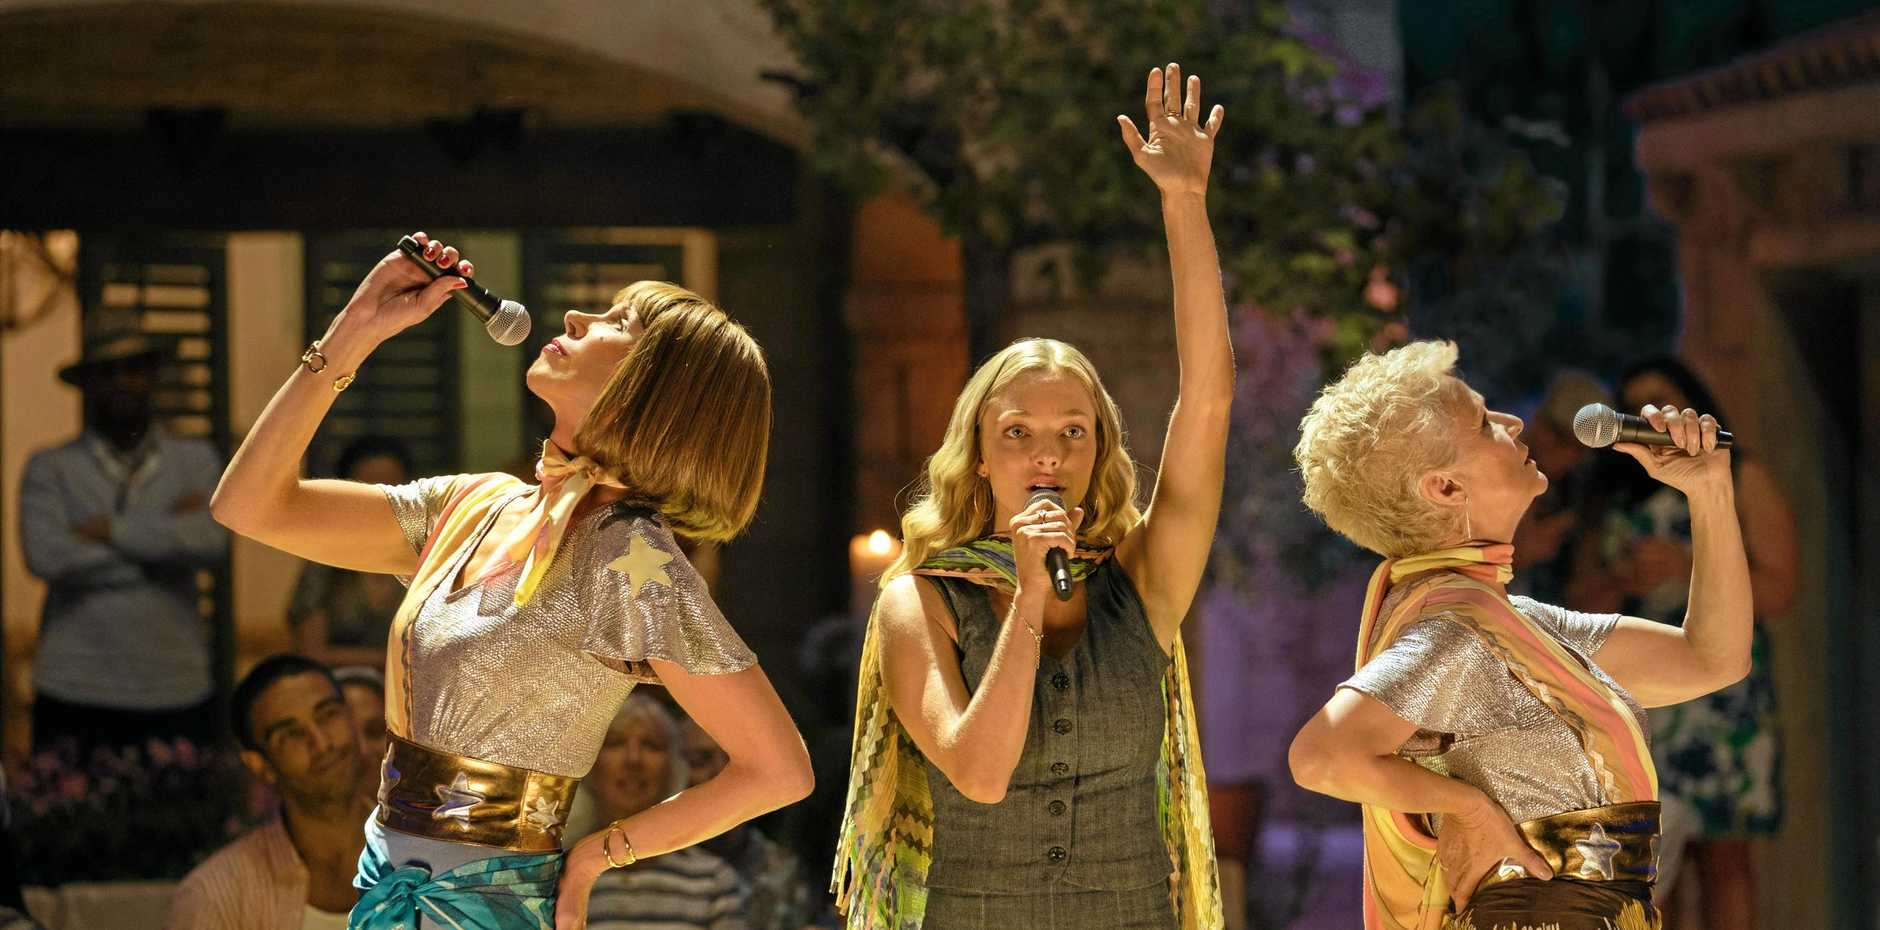 Christine Baranski, Amanda Seyfried and Julie Walters in a scene from Mamma Mia! Here We Go Again. Supplied by Universal Pictures.